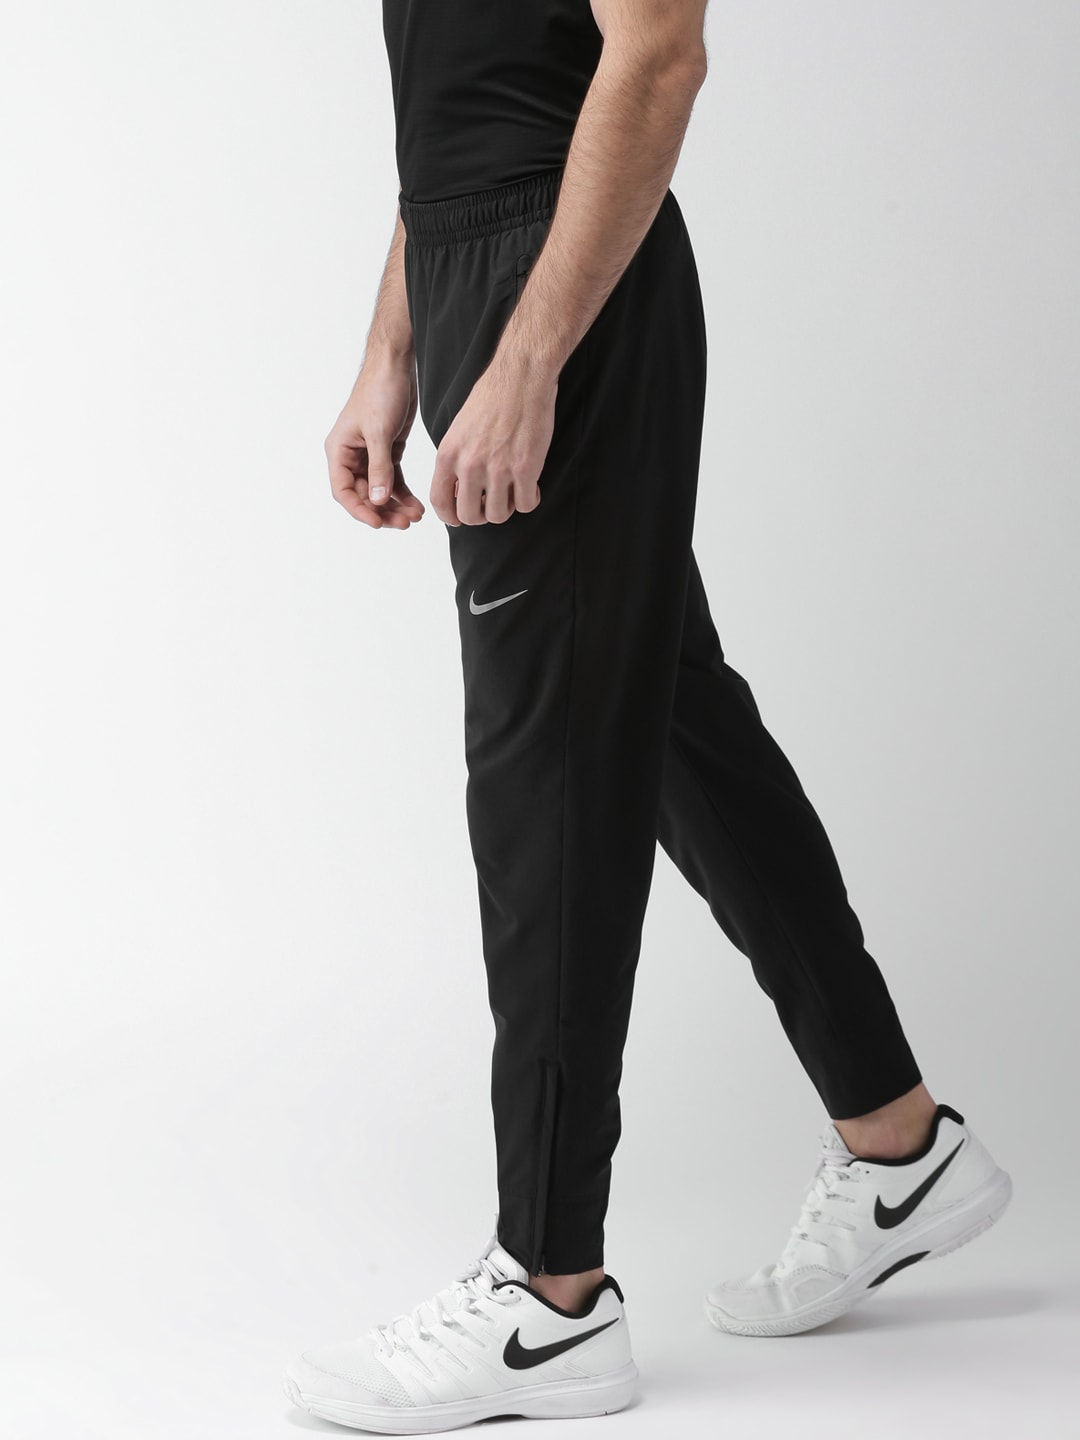 426ac83620368 Men Track Pants-Buy Track Pant for Men Online in India